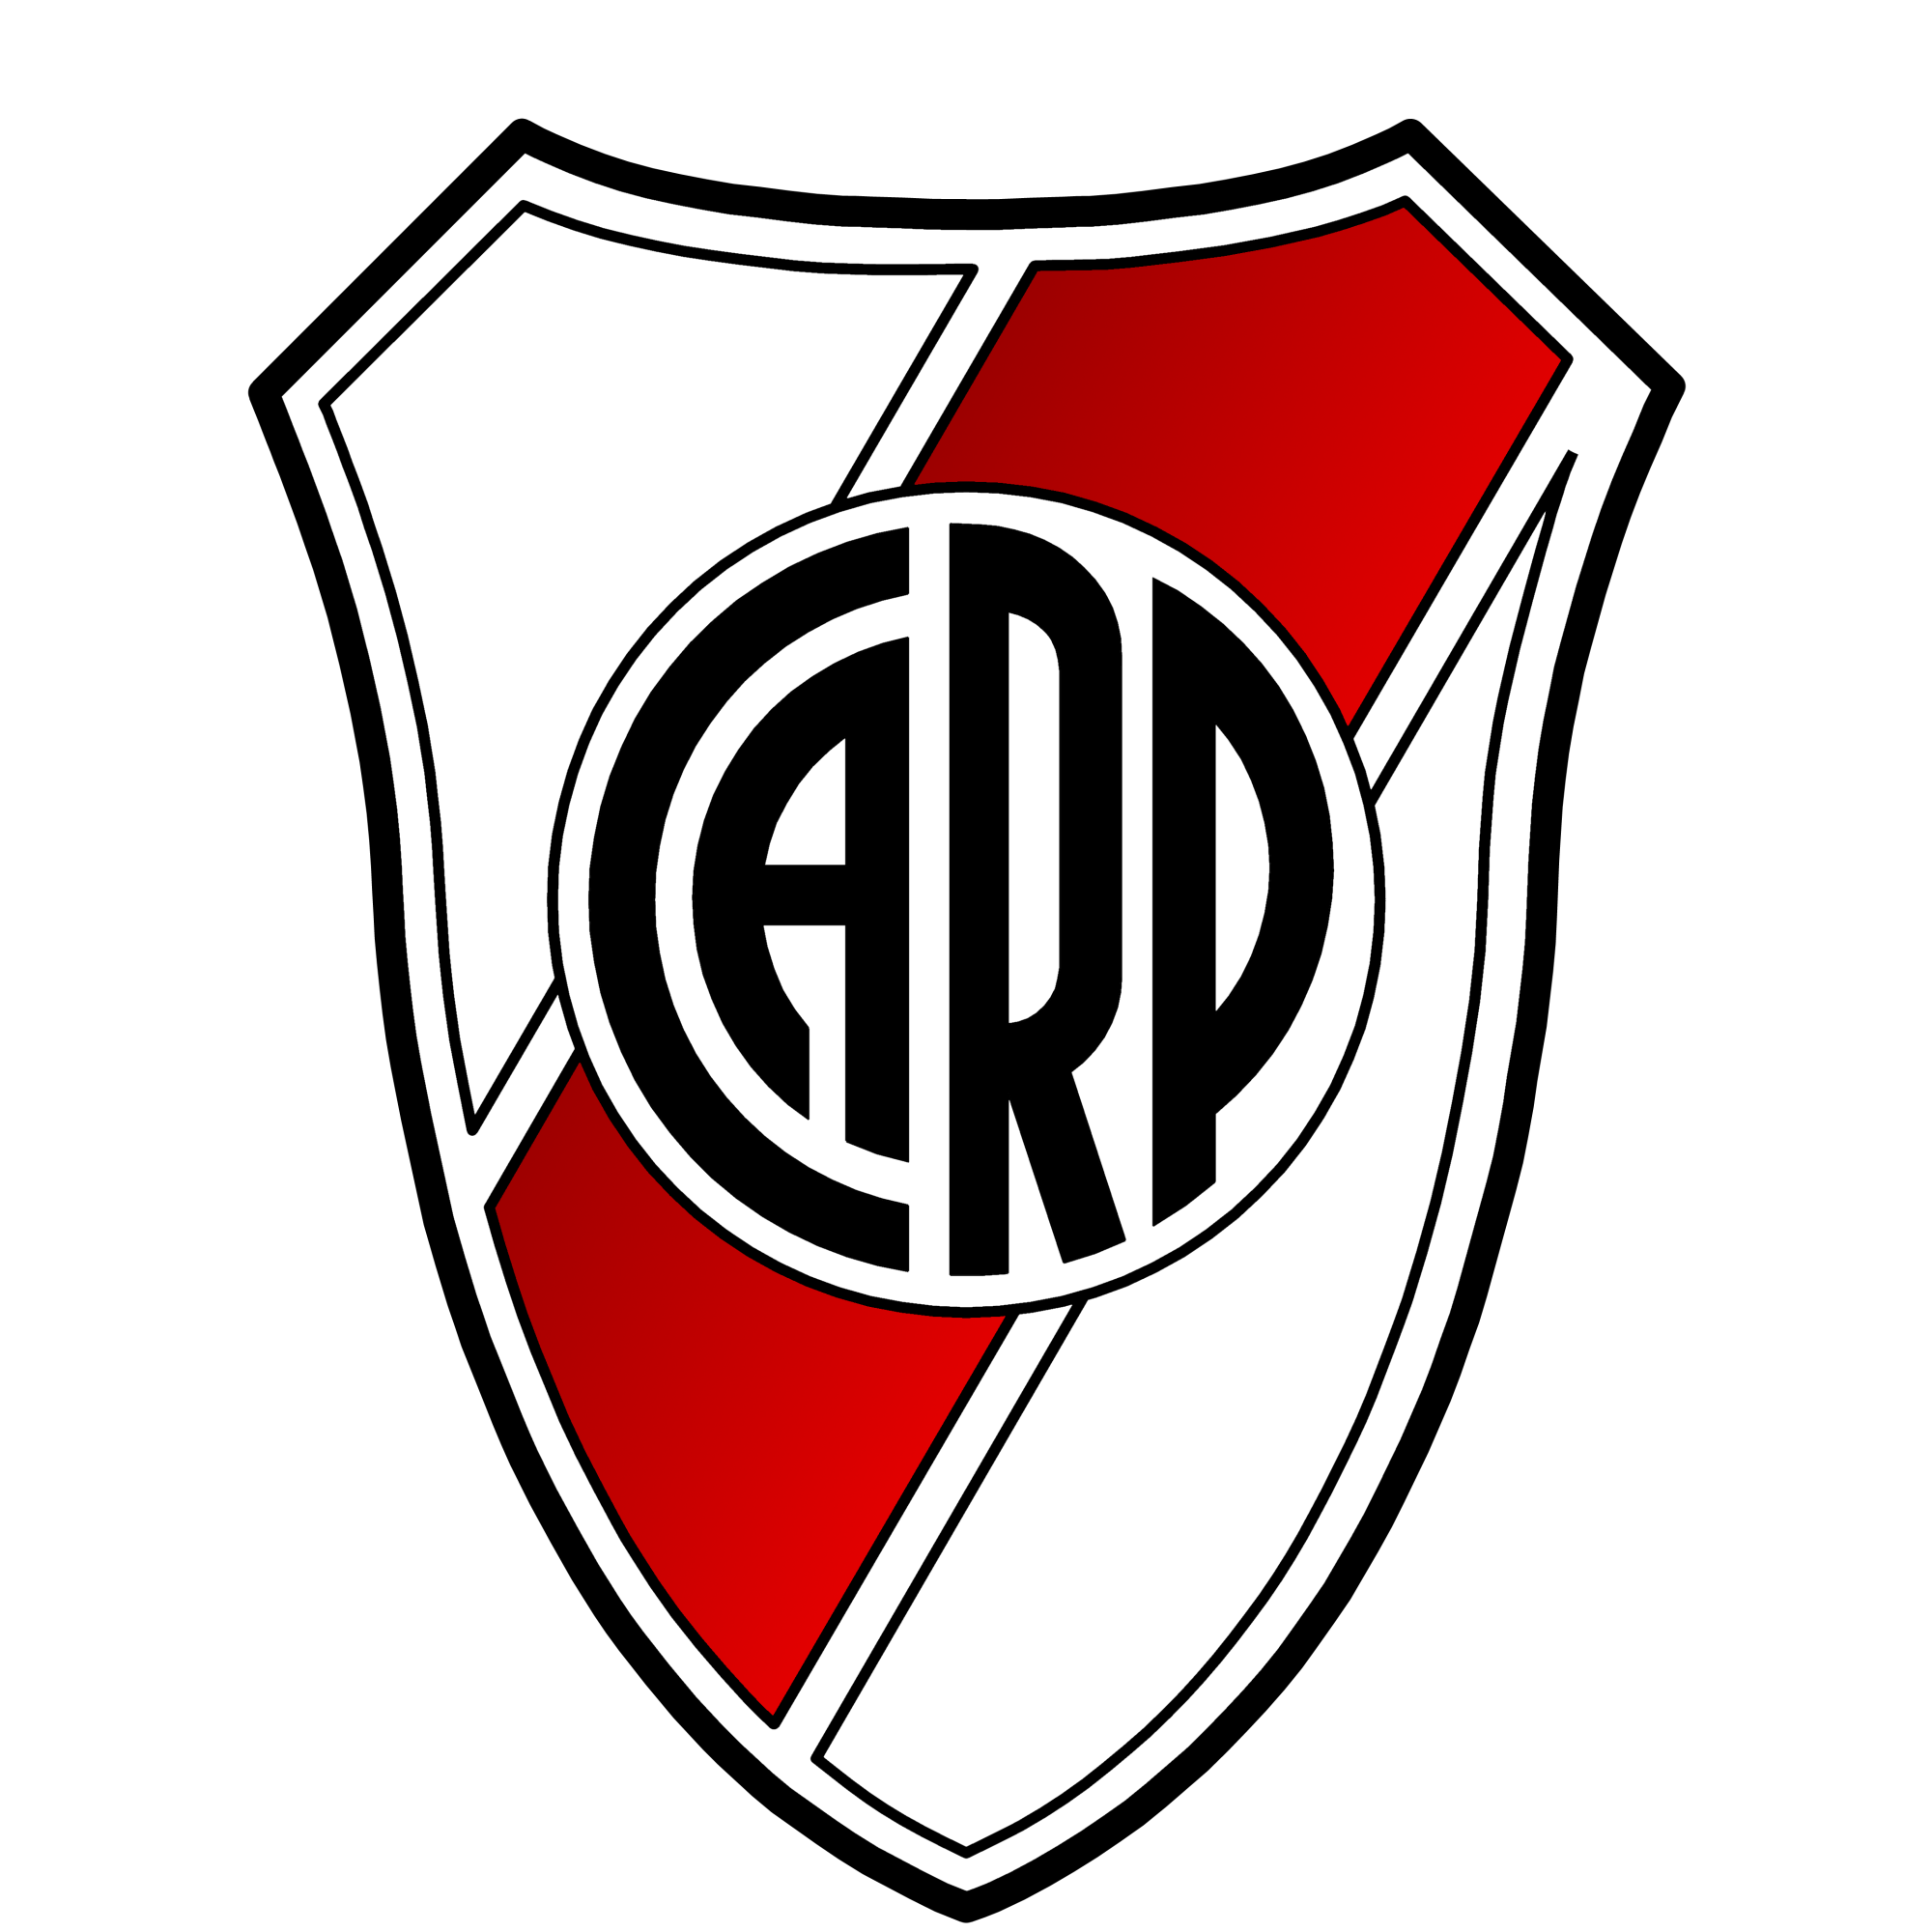 Escudo river plate png. File svg wikimedia commons